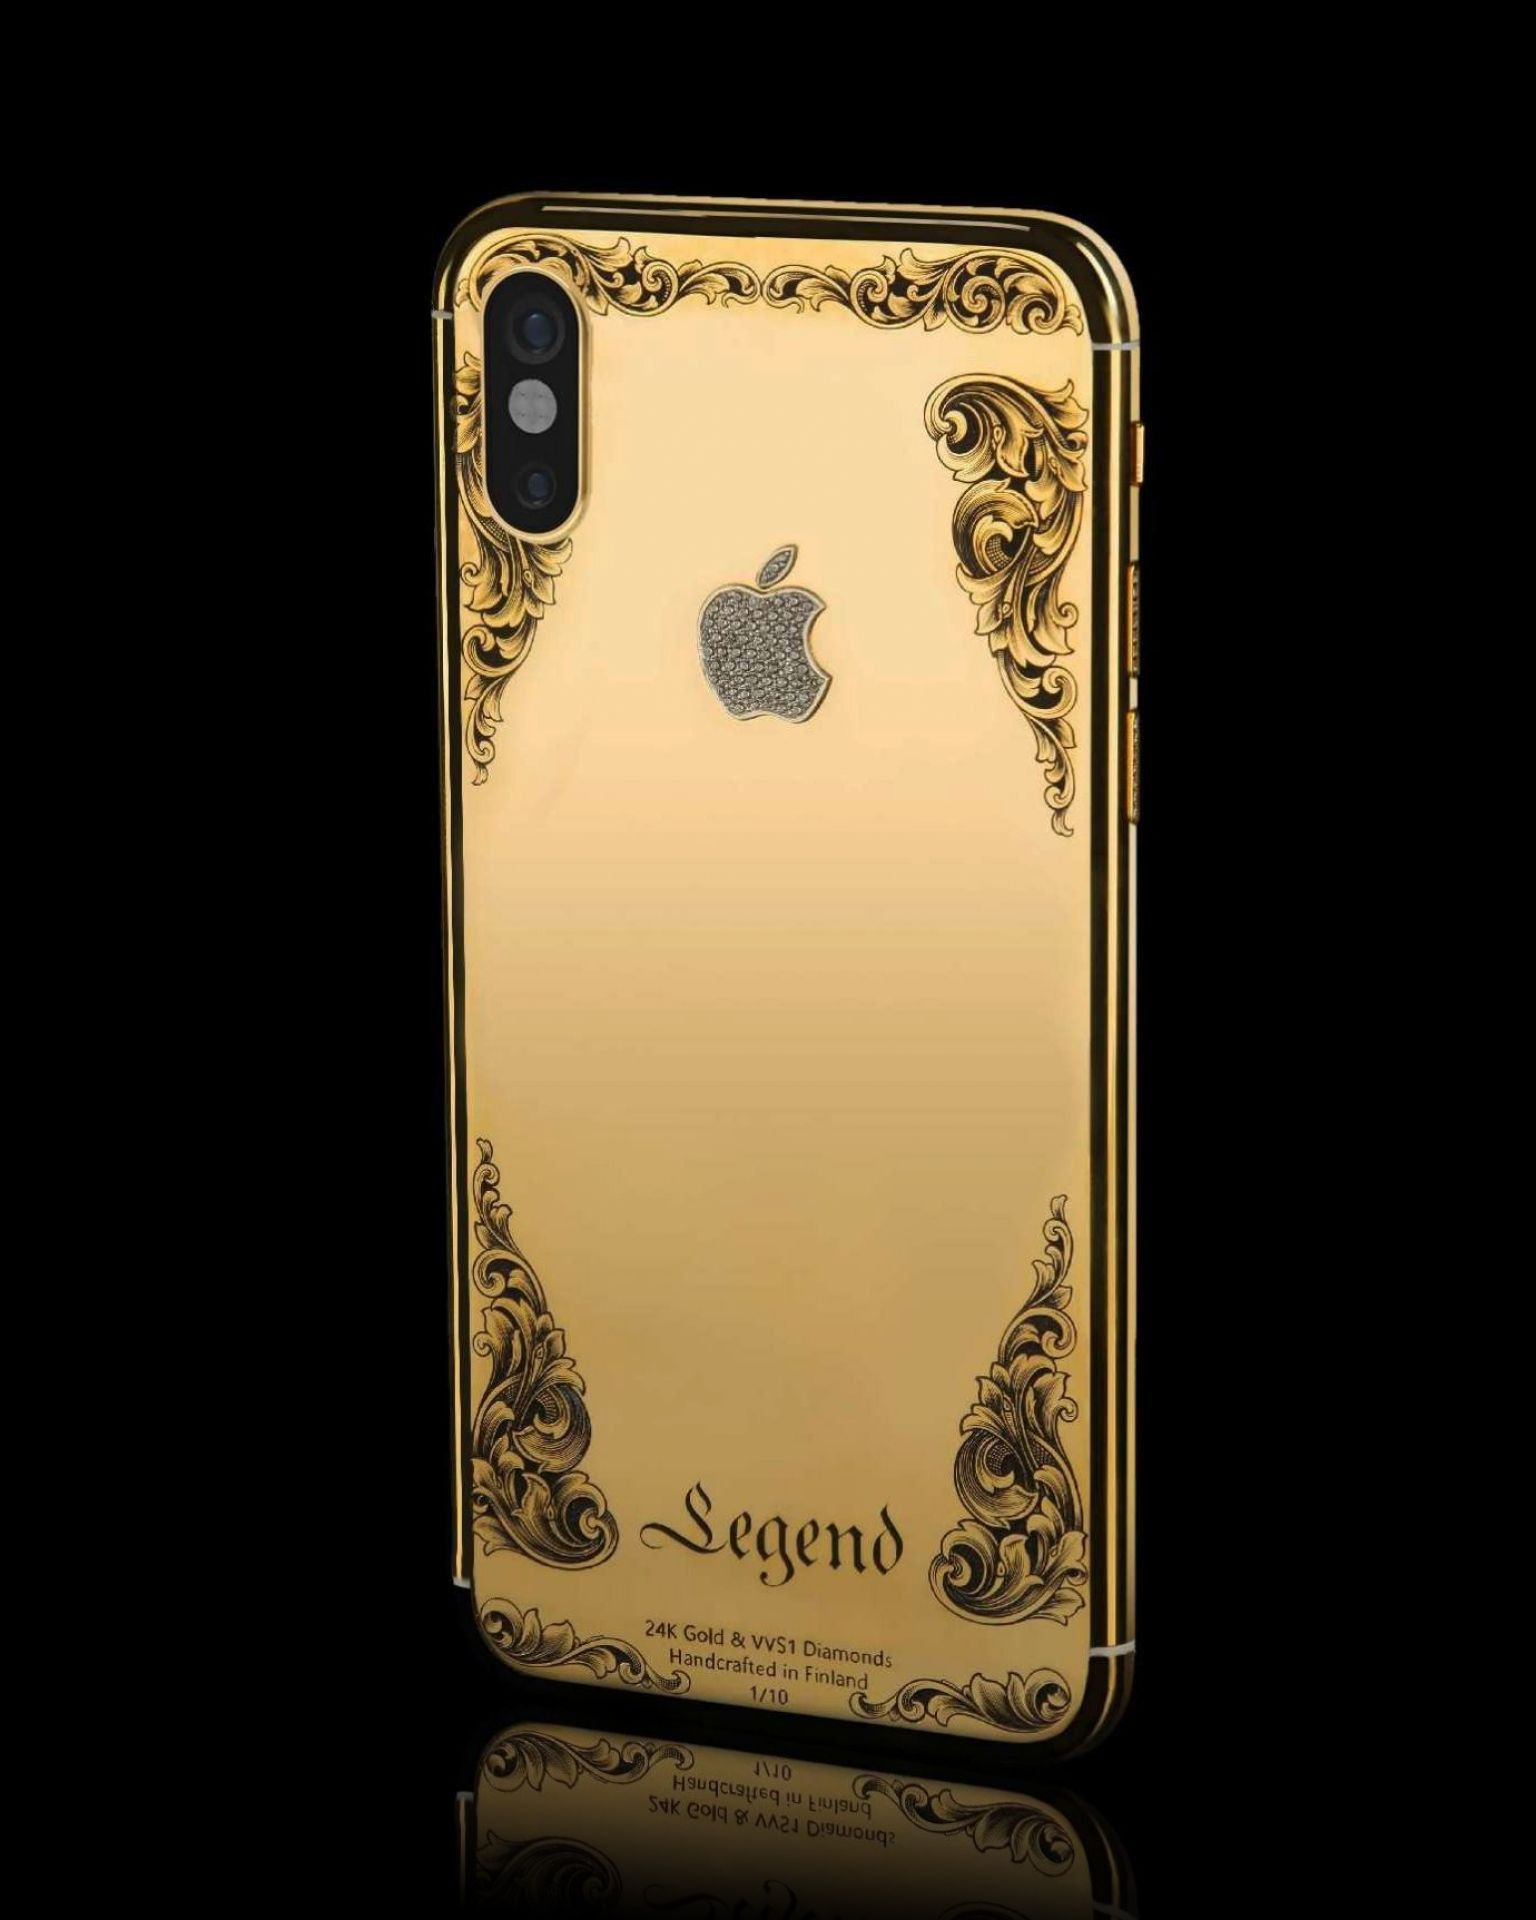 "Bespoke iPhone 11 Pro ""Classique"" by Legend, Diamonds, Hand Engraving & 24K Gold"